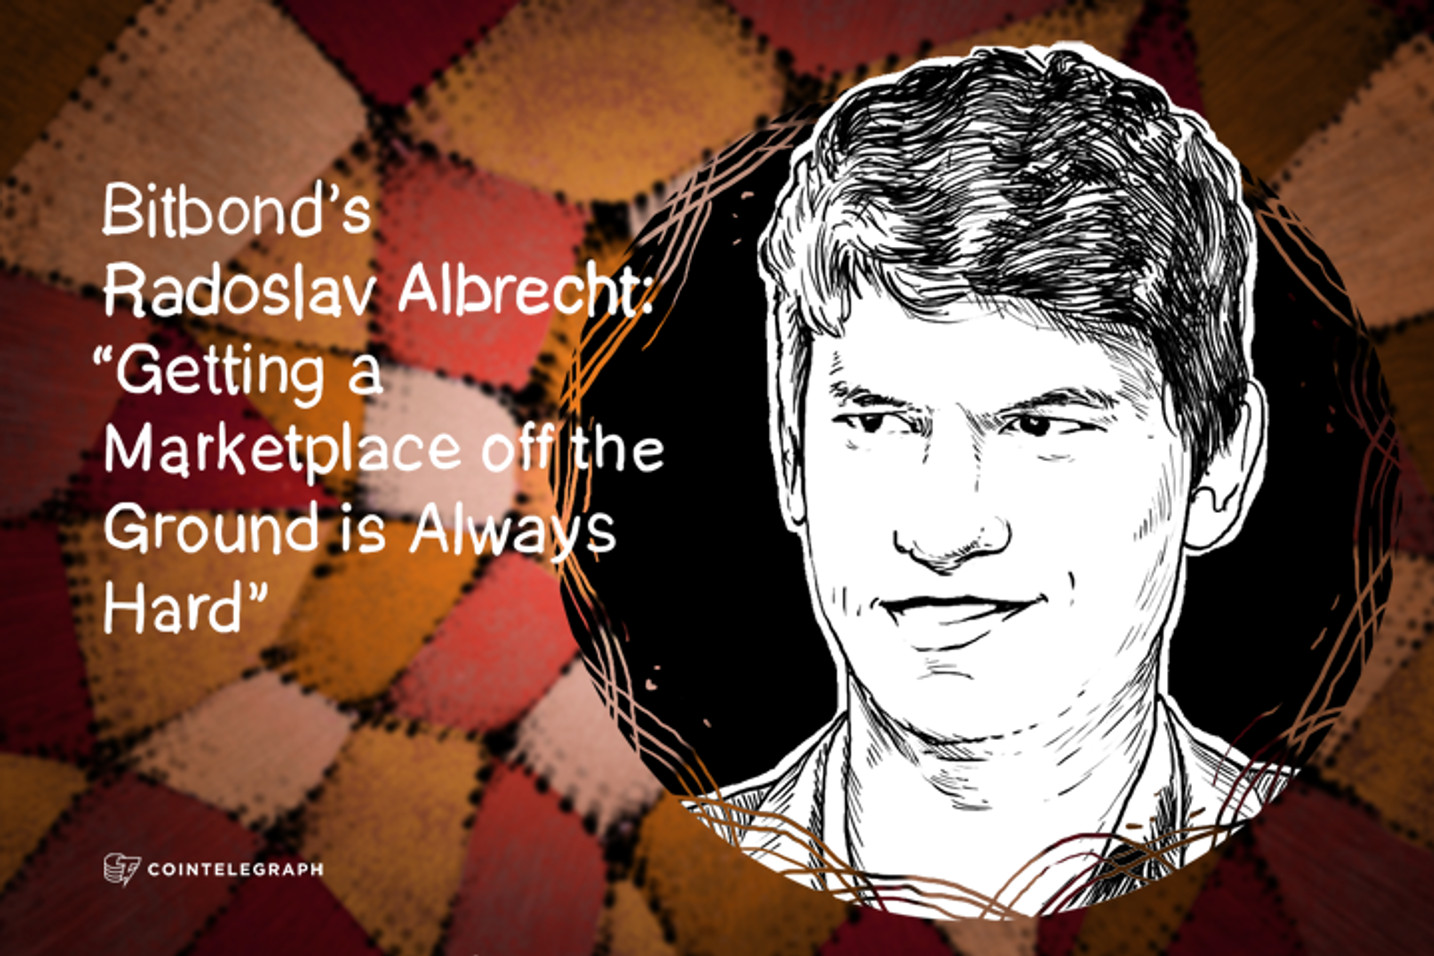 Bitbond's Radoslav Albrecht: 'Getting a Marketplace off the Ground is Always Hard'